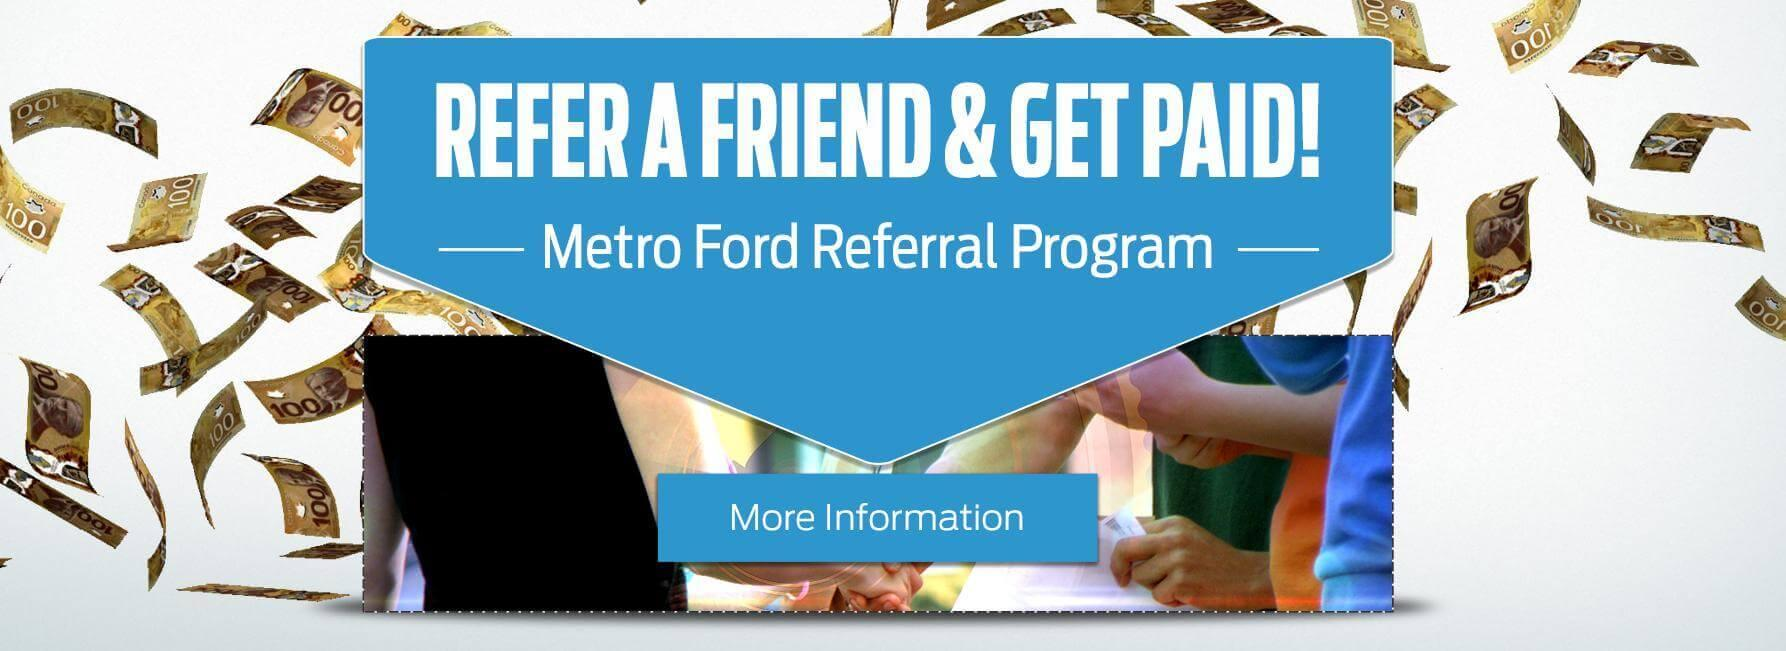 Refer a fiend and get paid